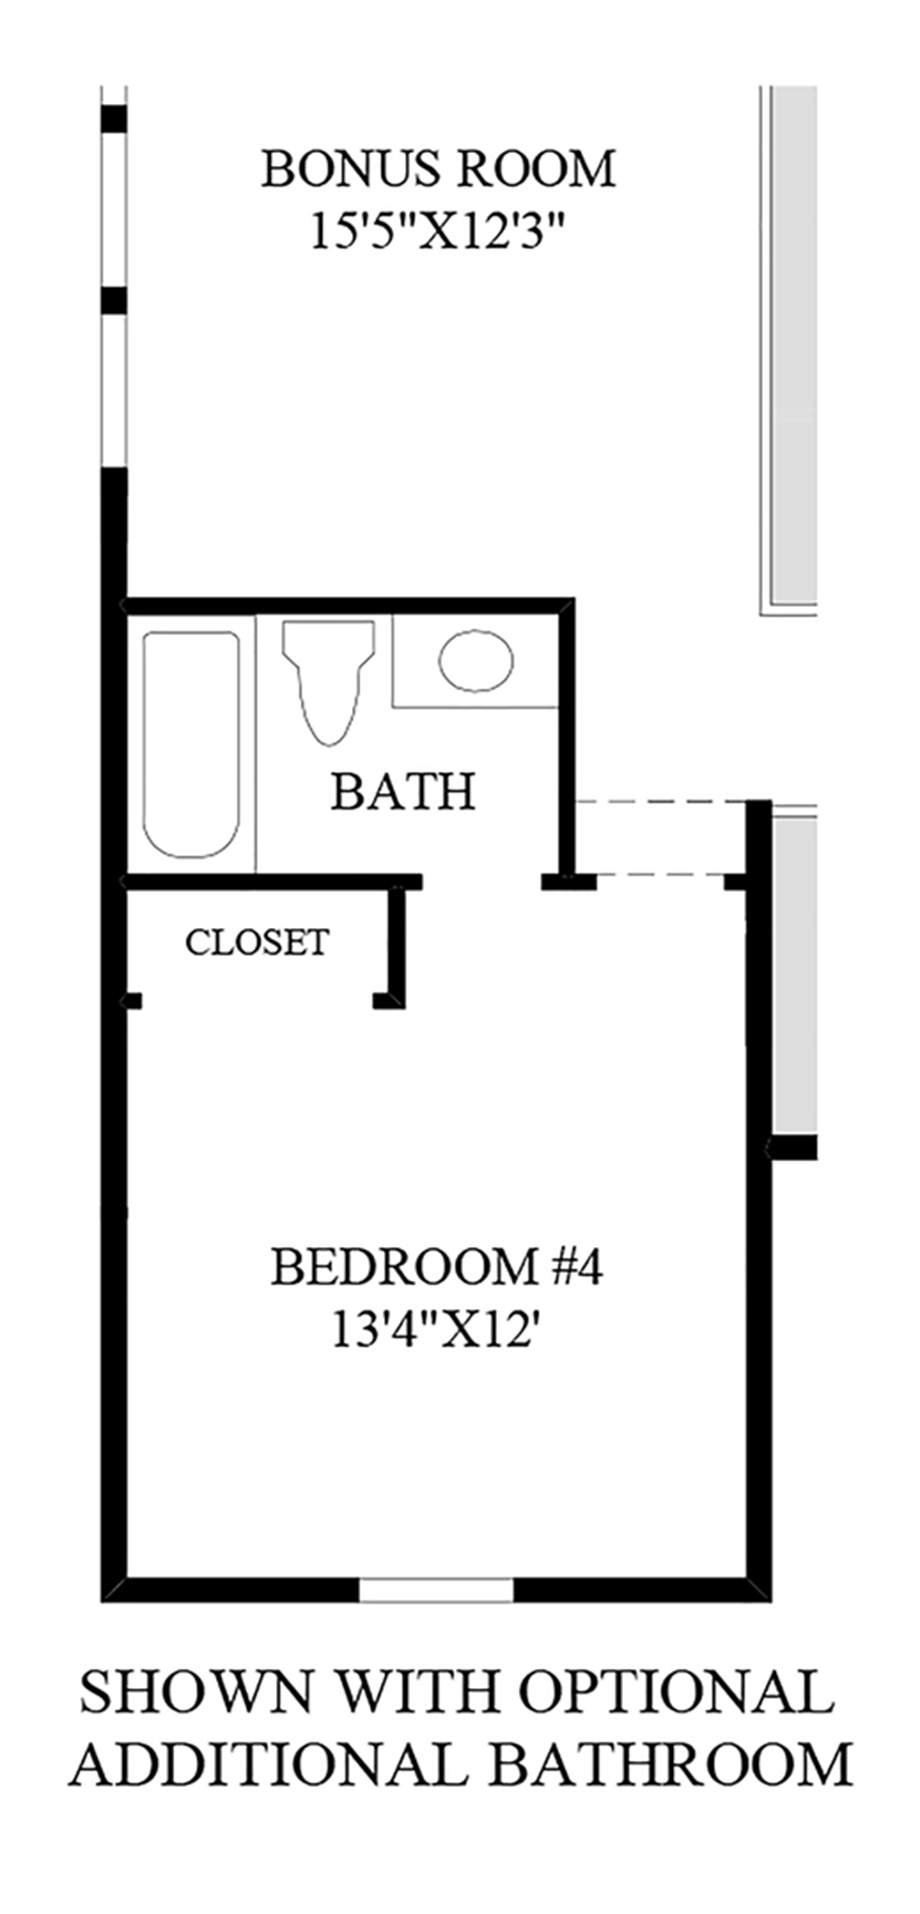 Optional Additional Bathroom Floor Plan